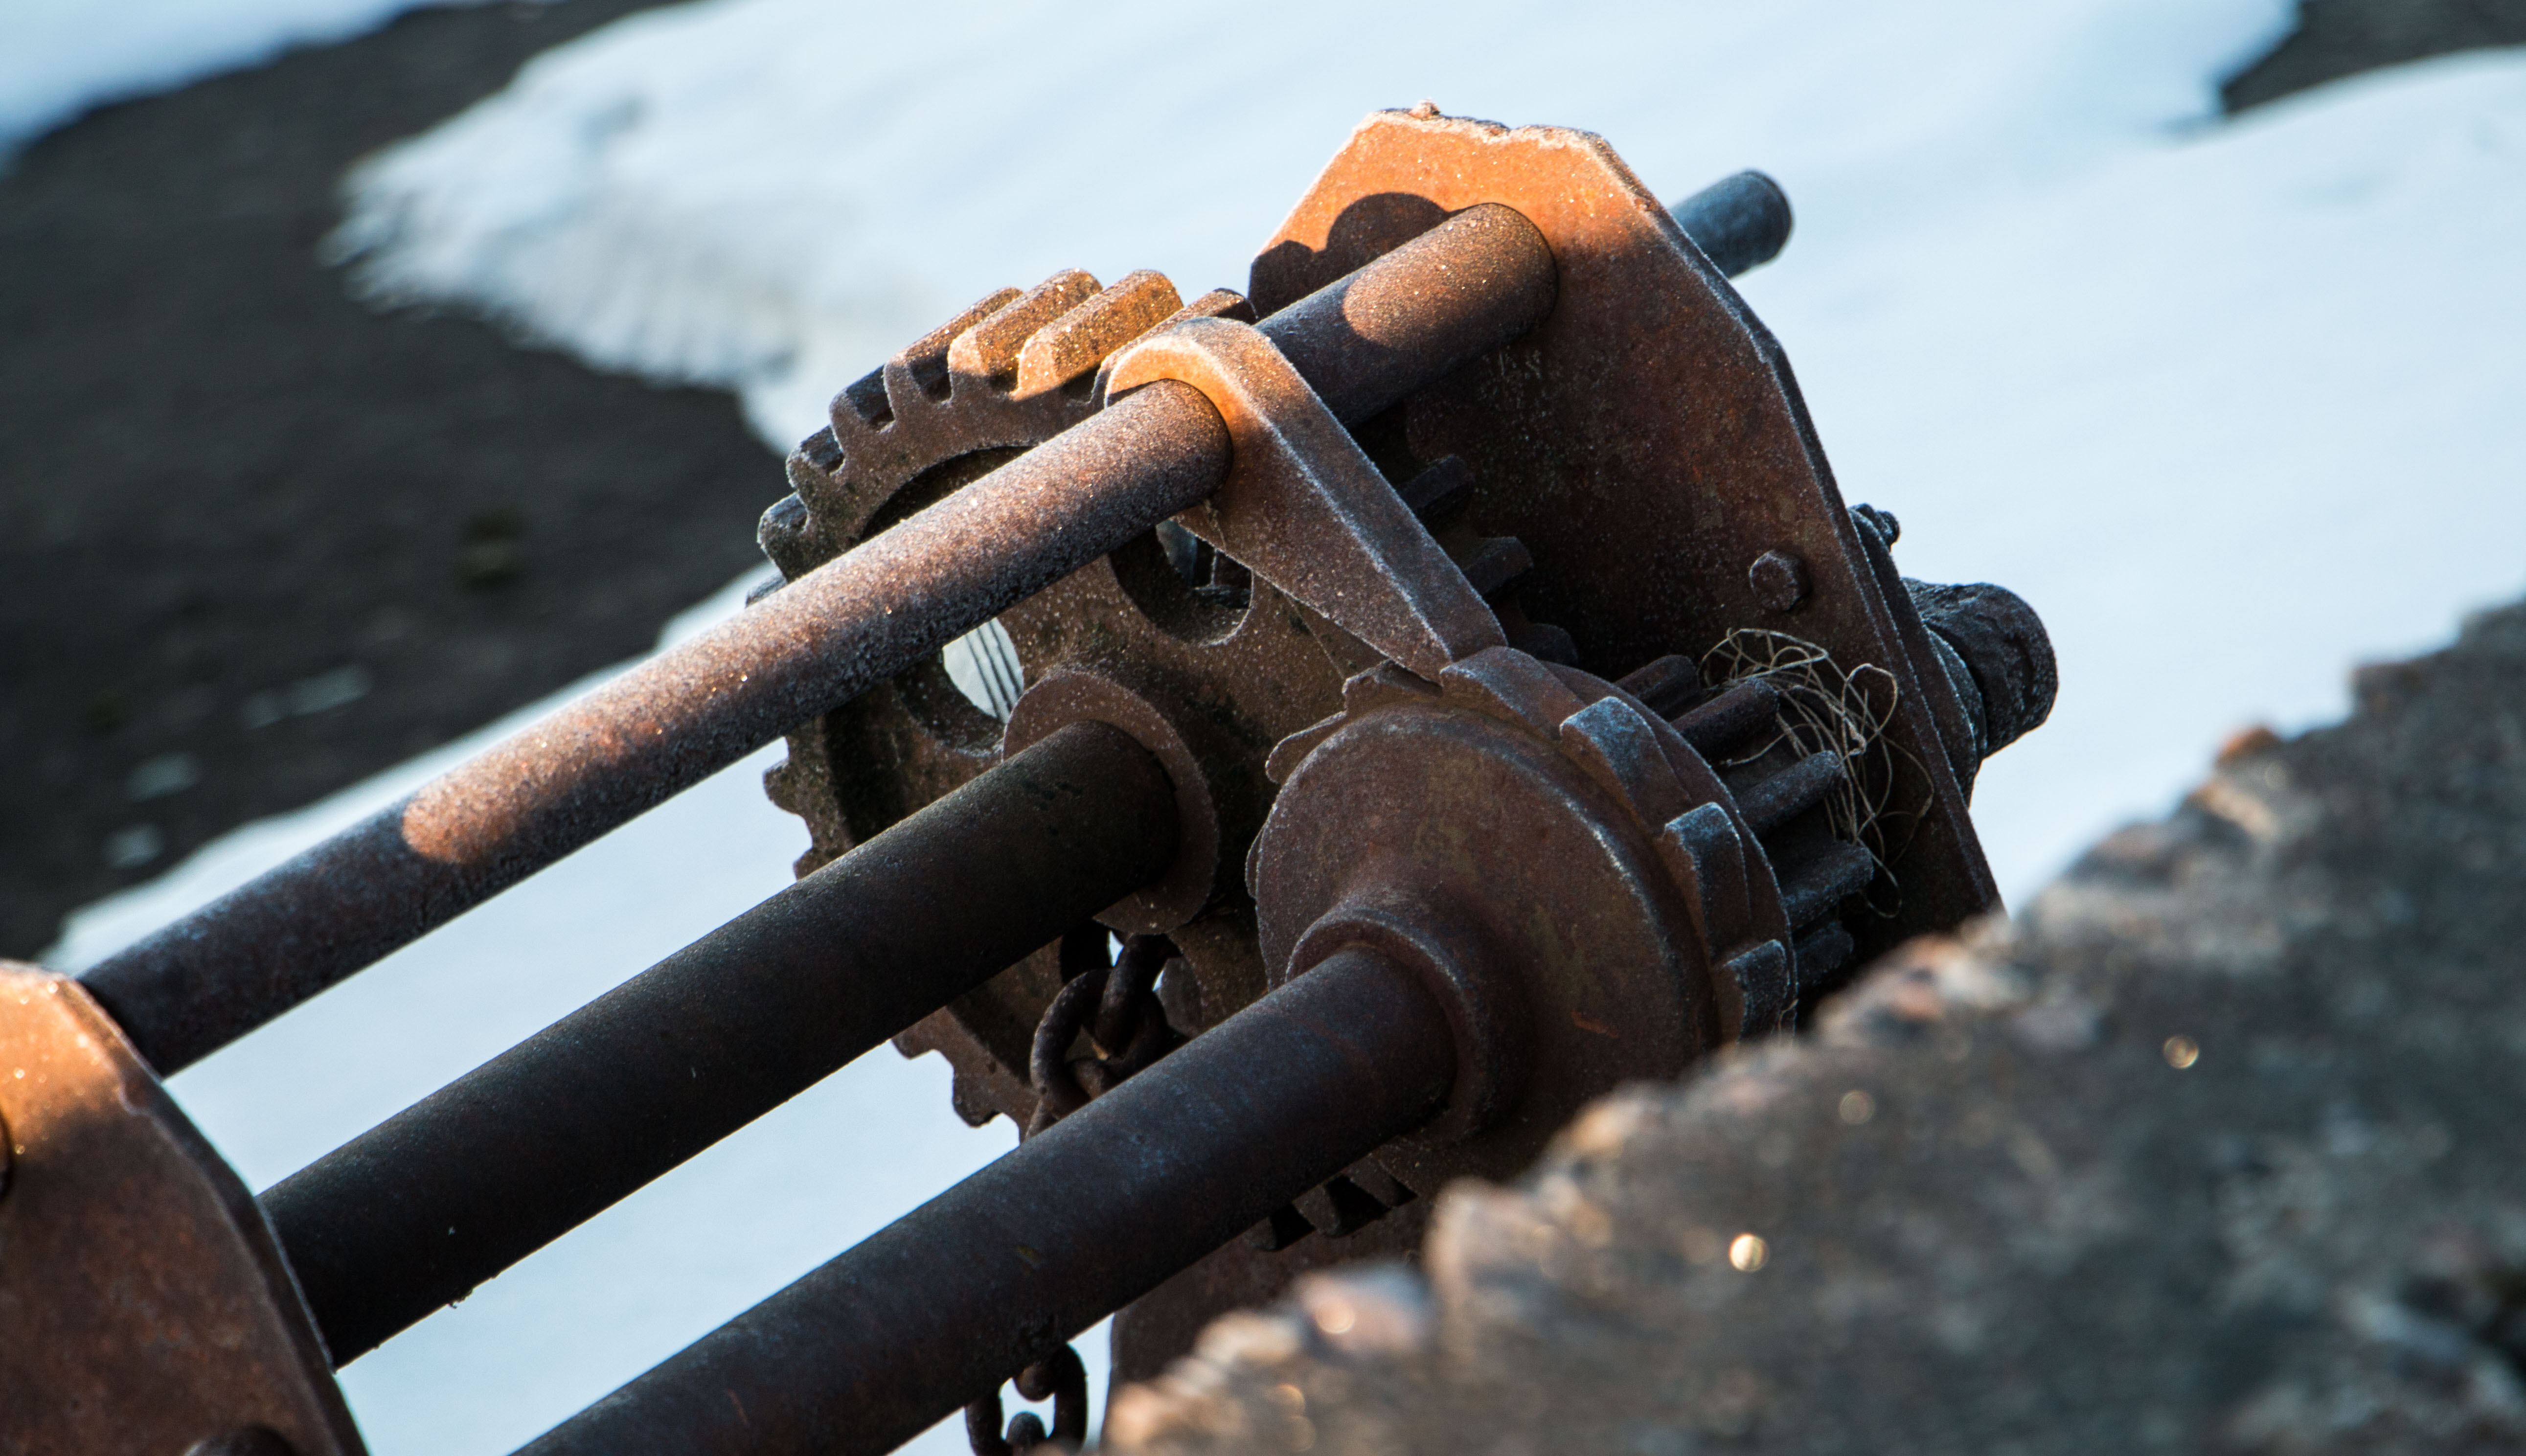 Rusty Winch, Outside, Old, Rusty, Sunny, HQ Photo